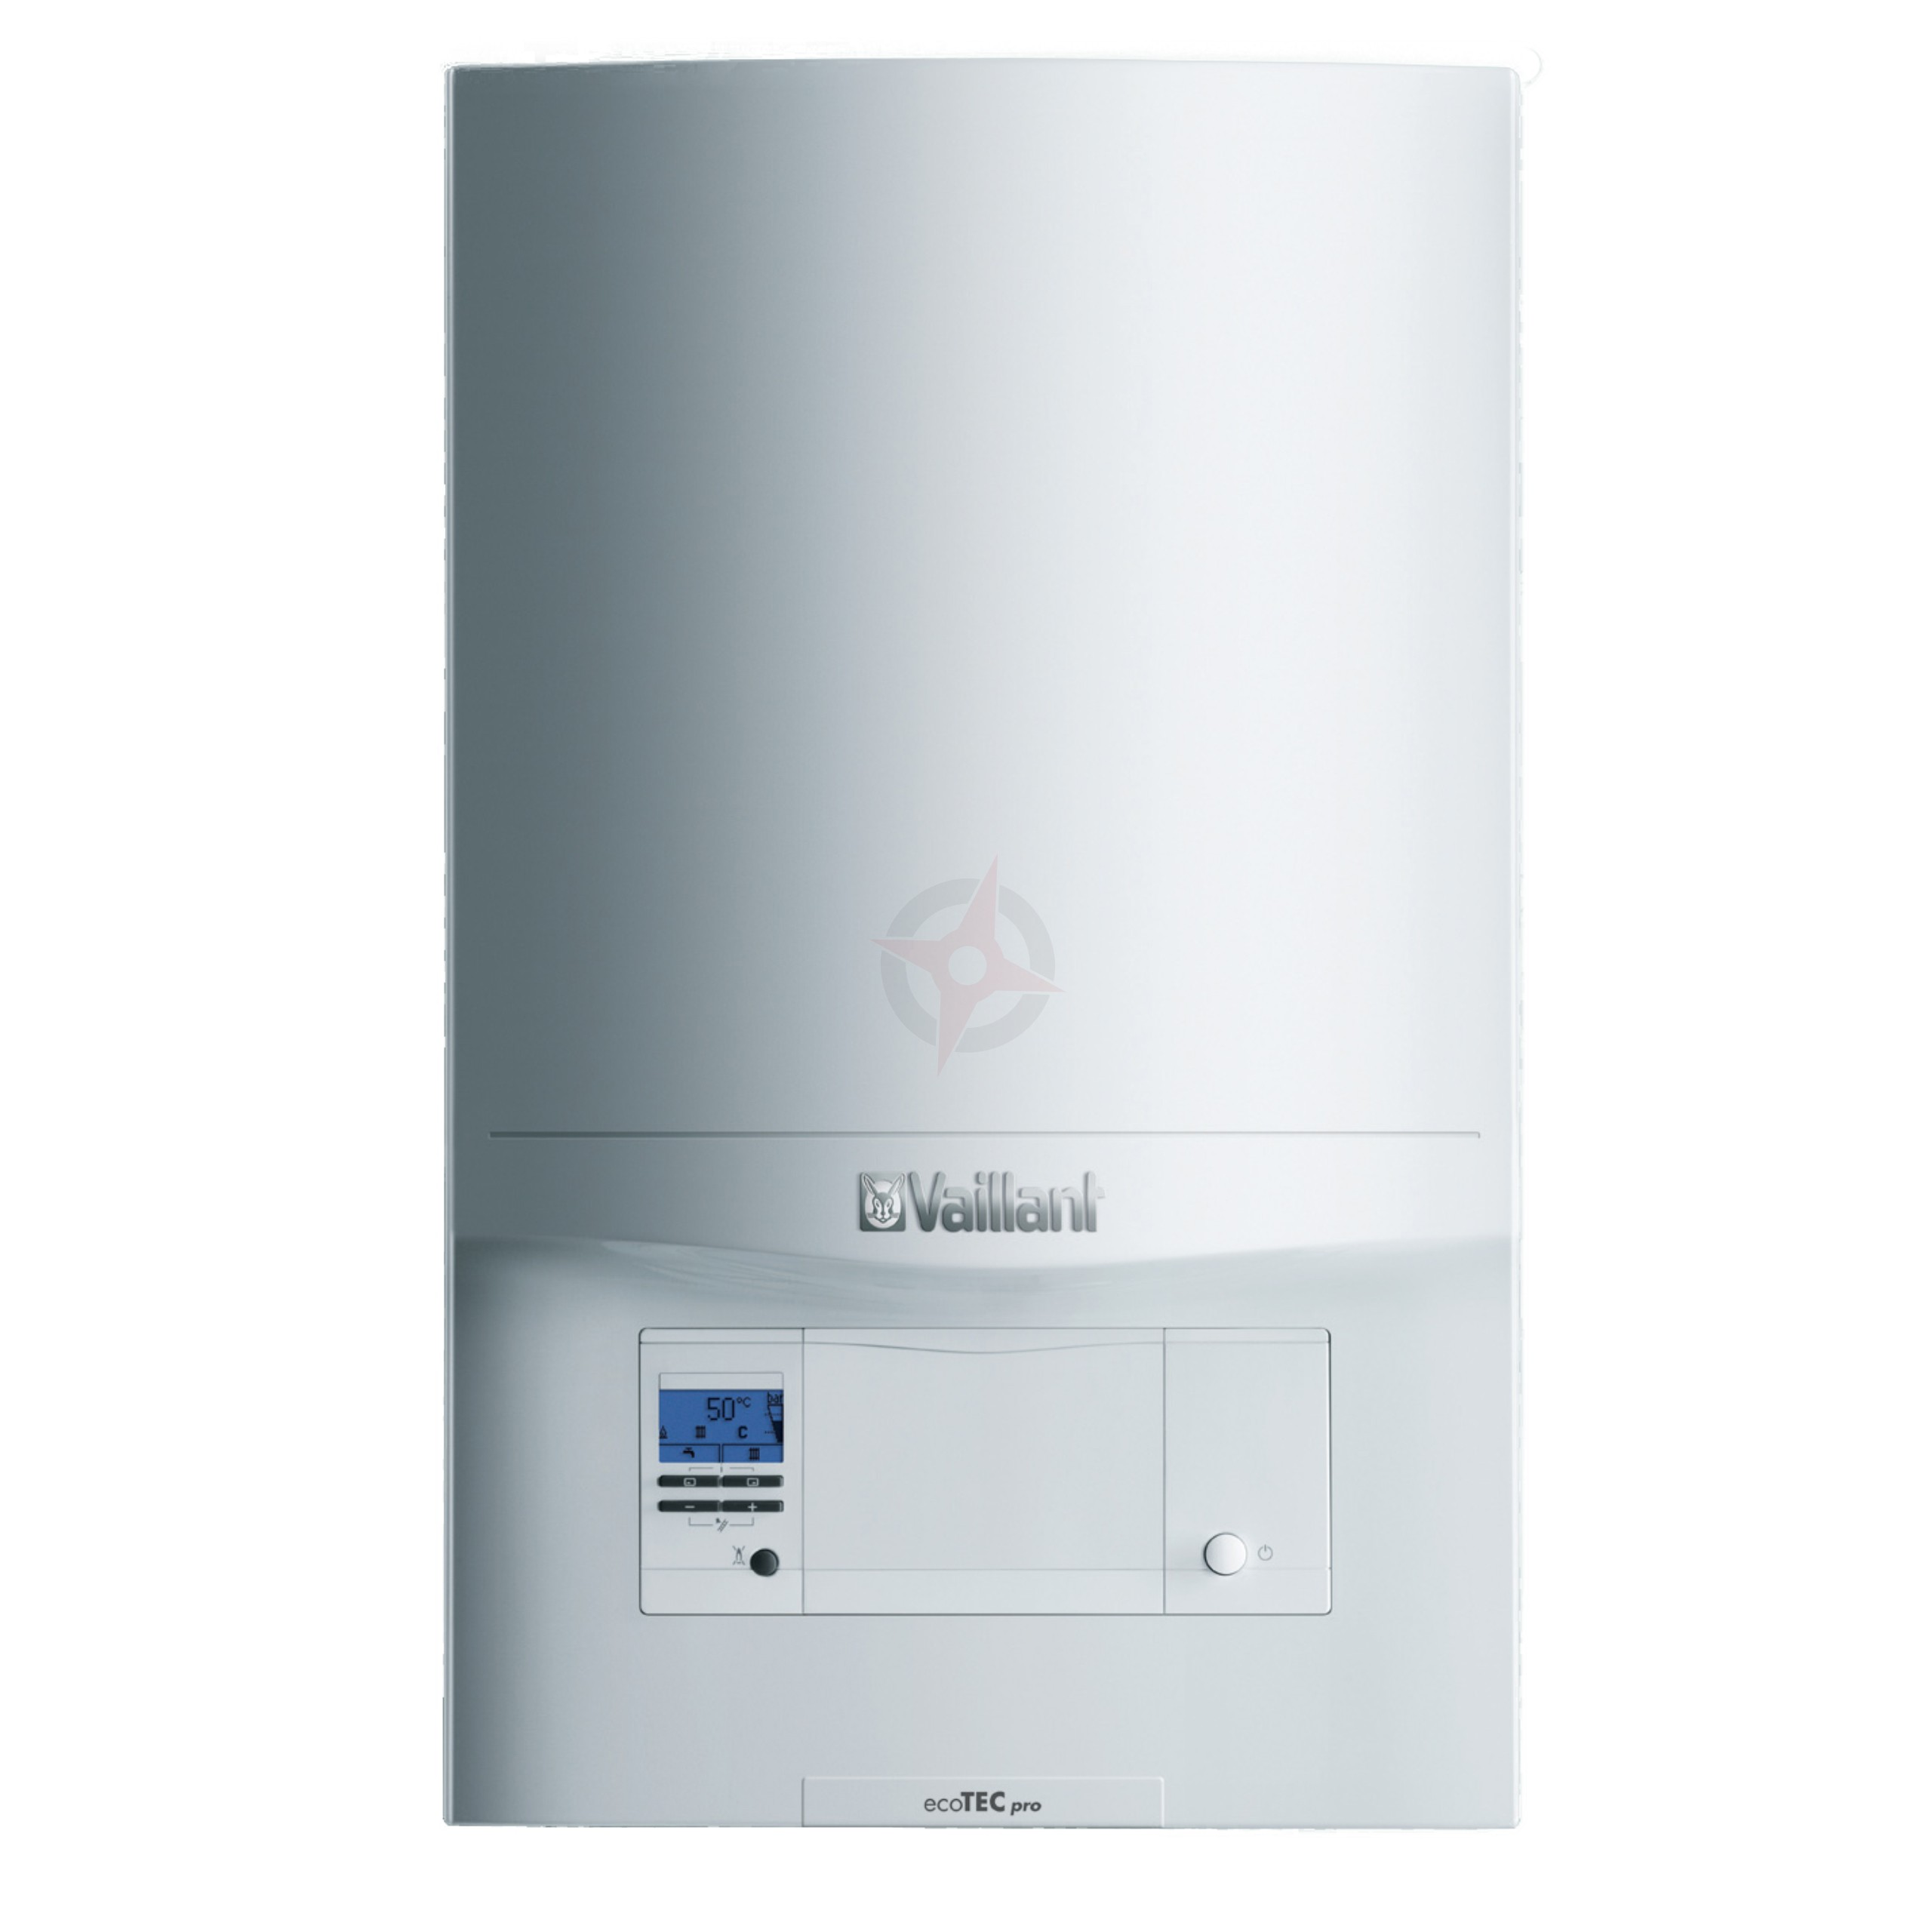 Combi Boiler: Combi Boiler Only Hot Water When The Heating Is On